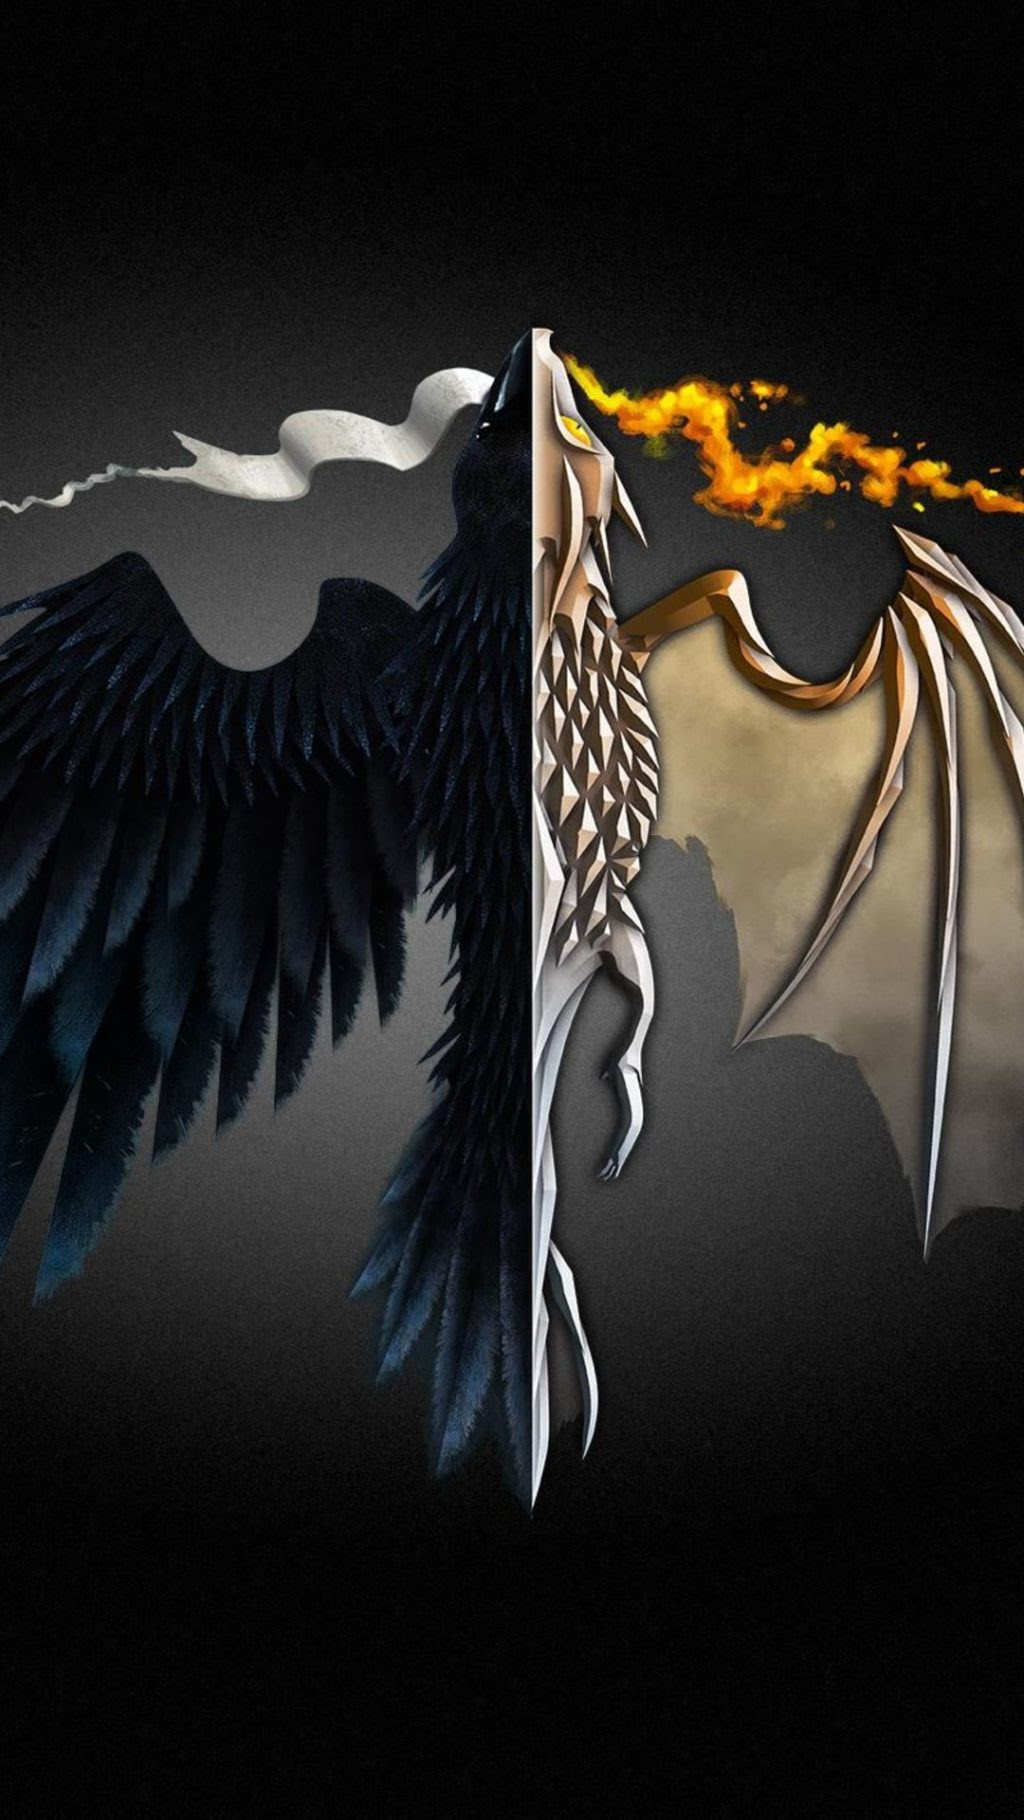 Cool Game Of Thrones Wallpapers For Iphone And Ipad Iphone Hacks